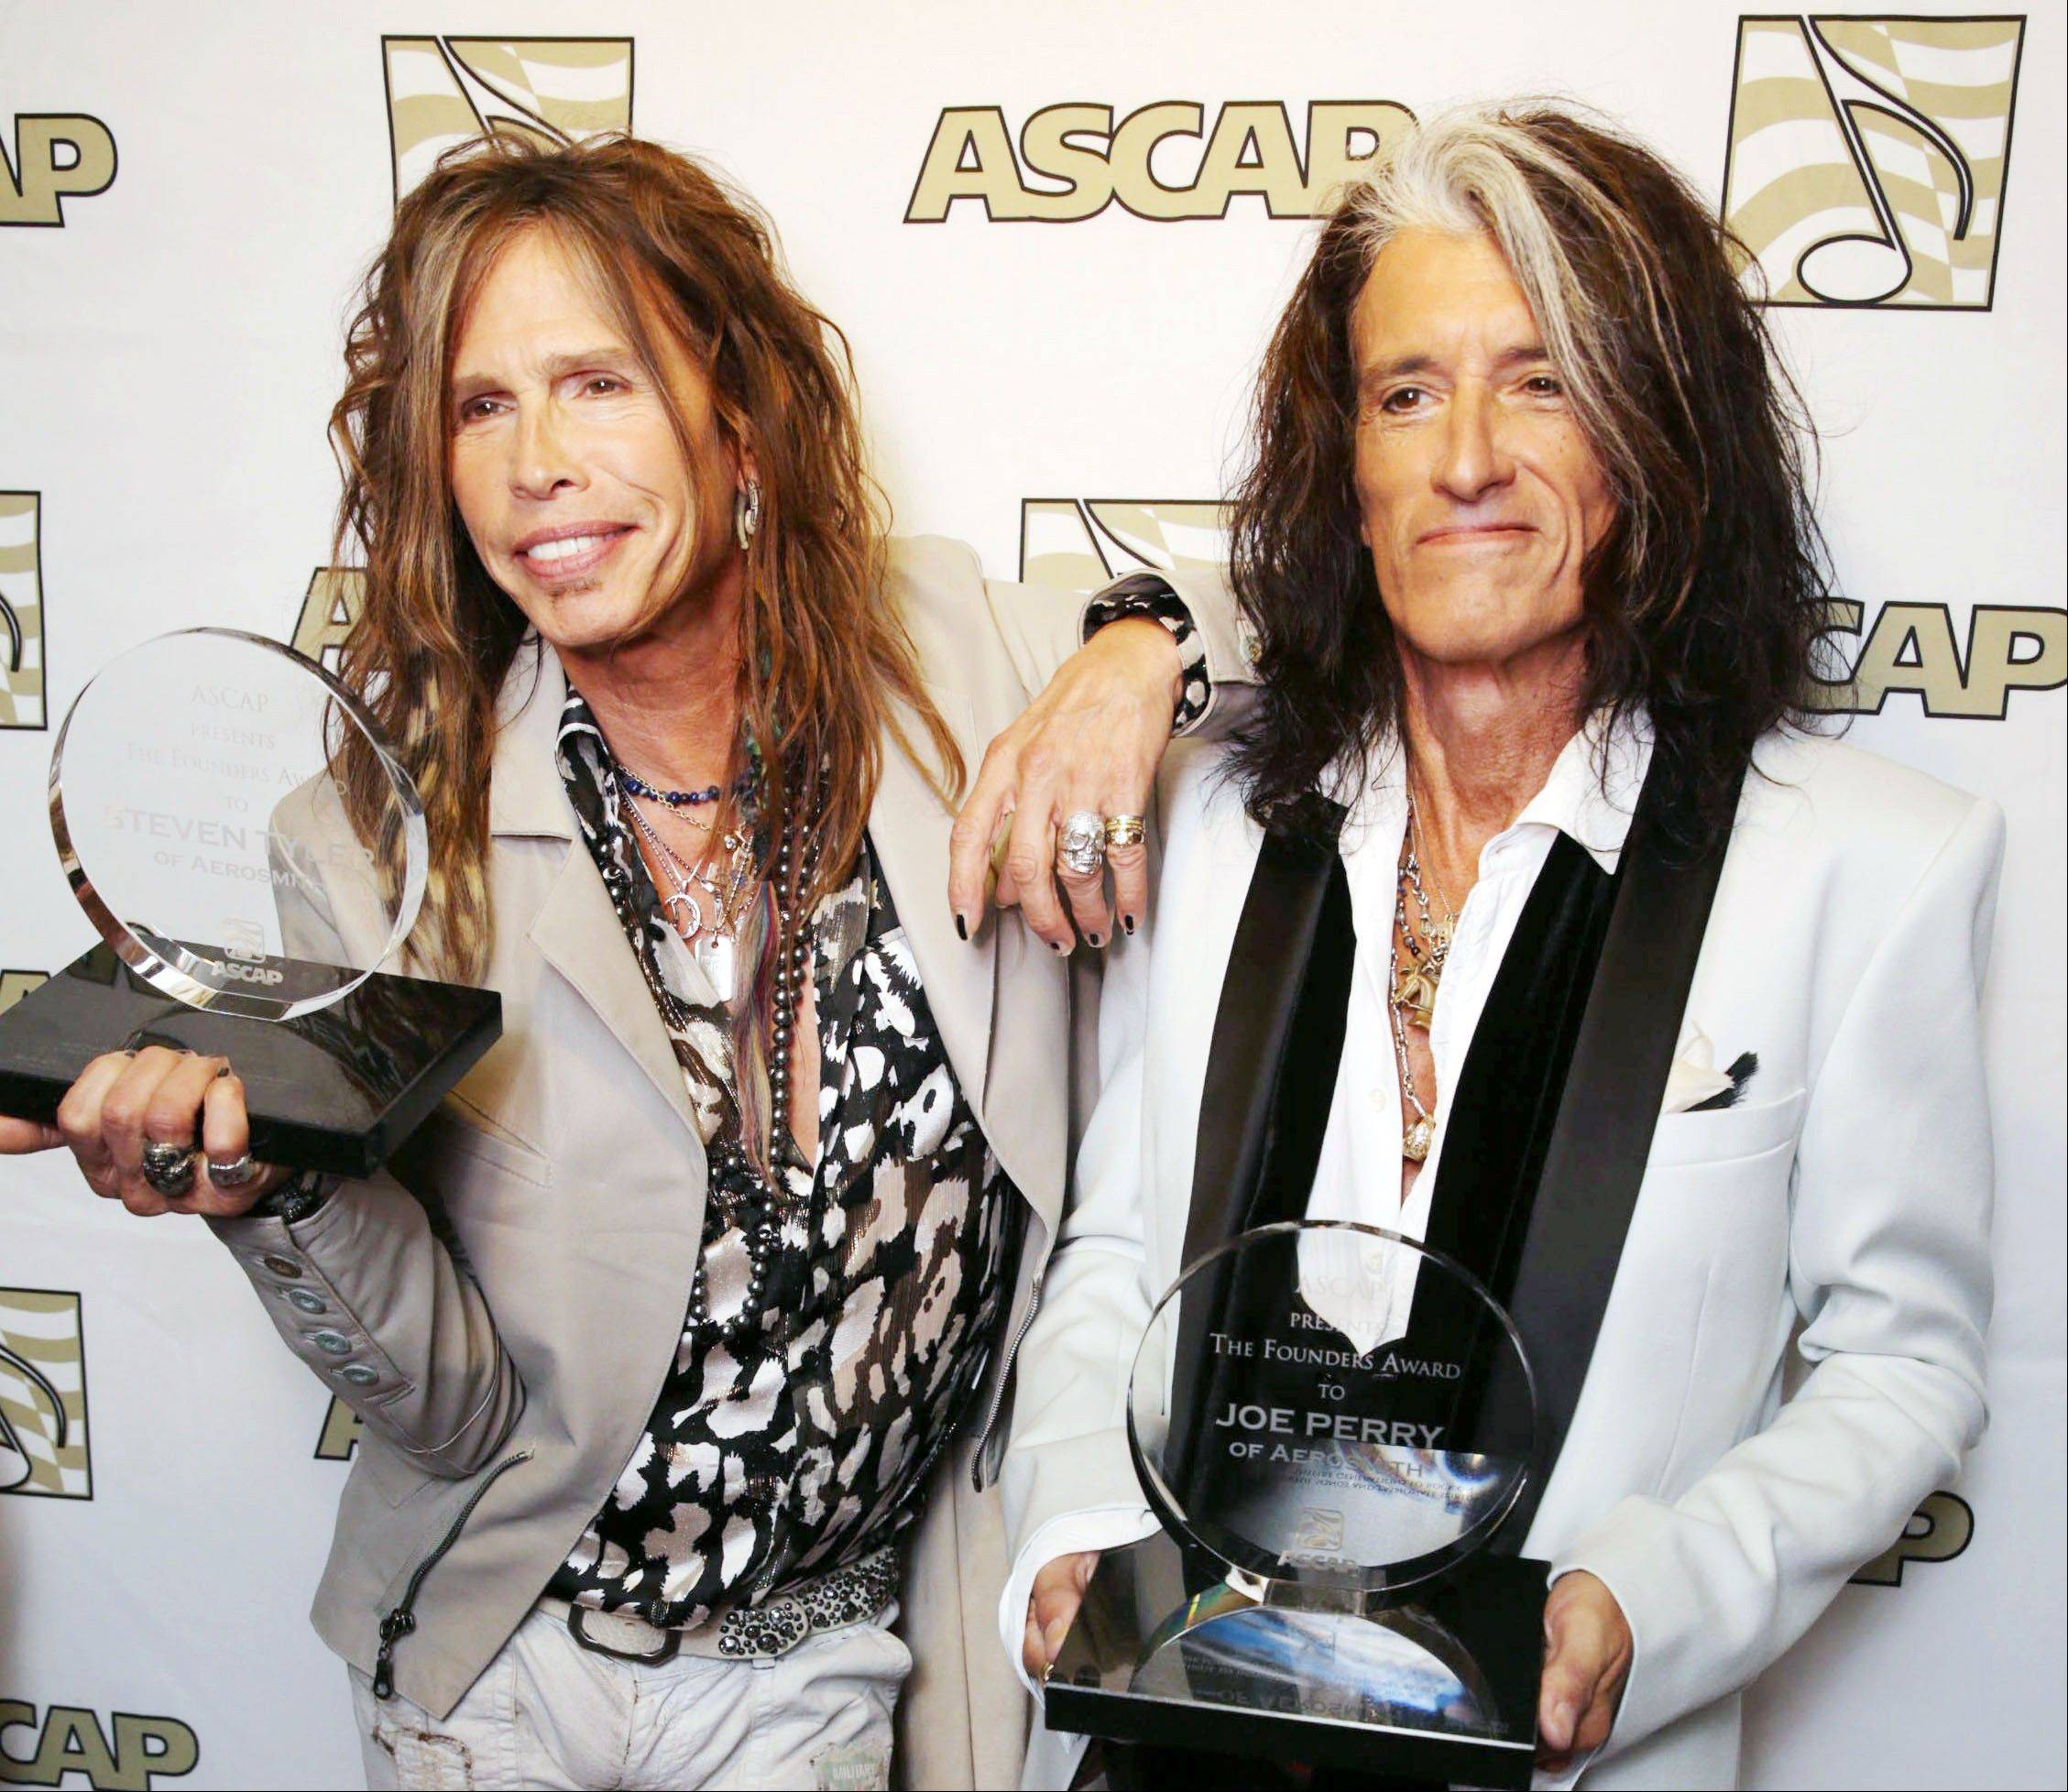 Steven Tyler, left, and Joe Perry, recipients of the ASCAP Founders Award, pose with their awards at the ASCAP Press Conference held at the Sunset Marquis, in Los Angeles. Tyler and Perry will be honored with the ASCAP Founders Award during ASCAP's 30th annual Pop Music Awards at a gala on April 17 in Los Angeles.